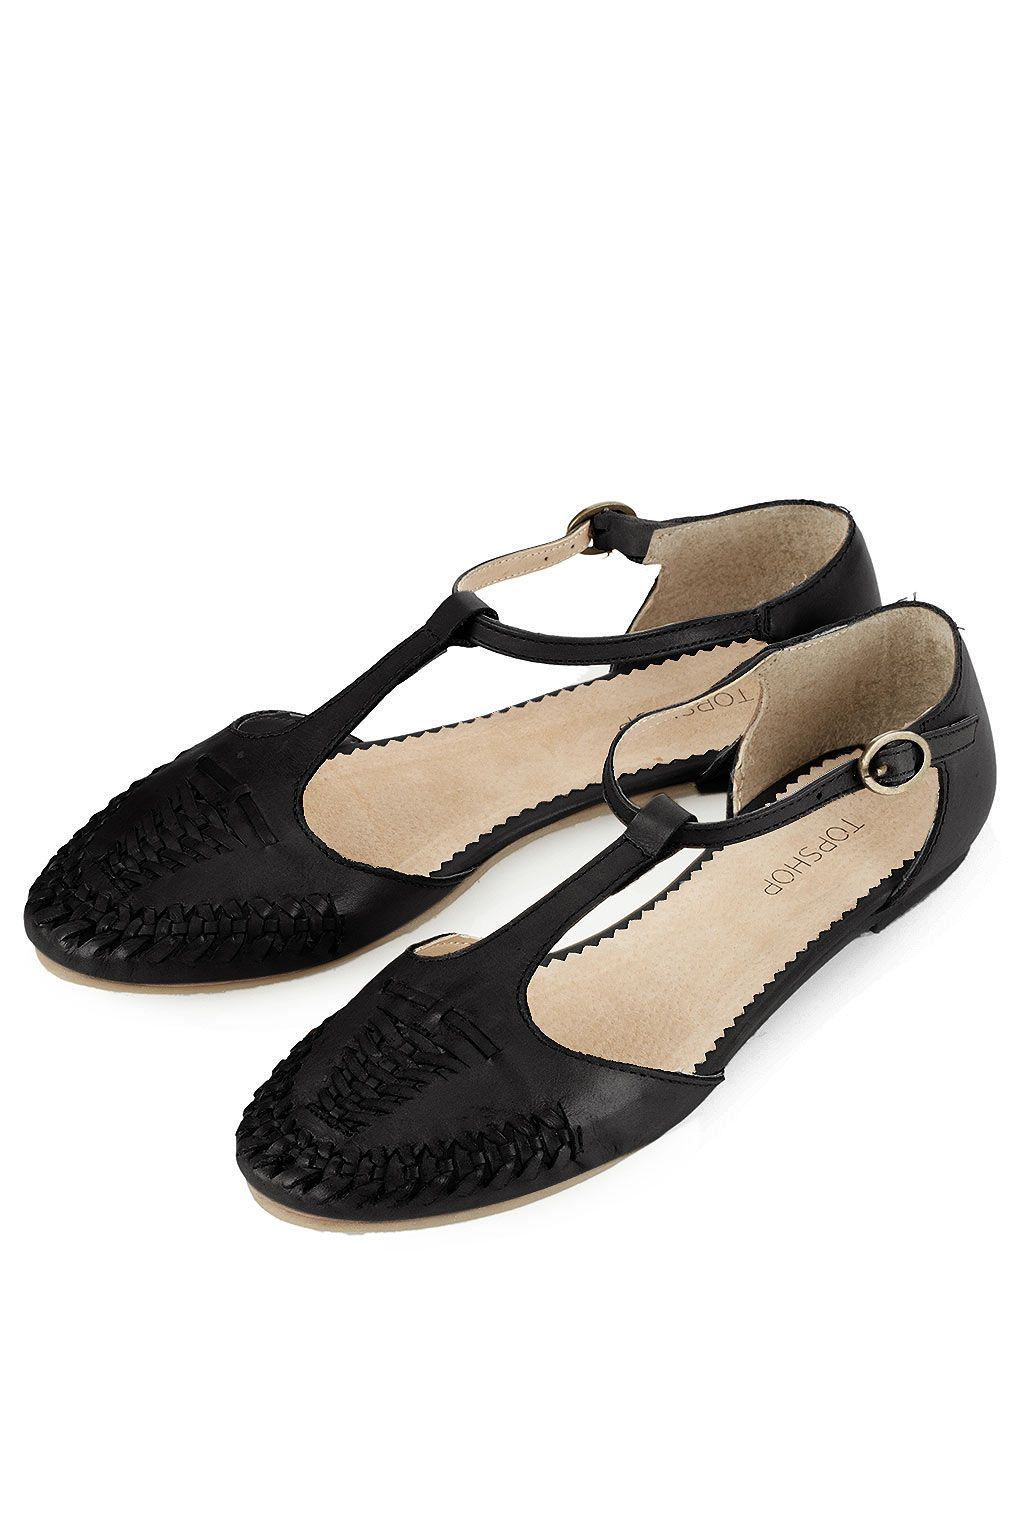 Hacienda Vintage T Bar Shoes Style Luv Pinterest Black Leather And